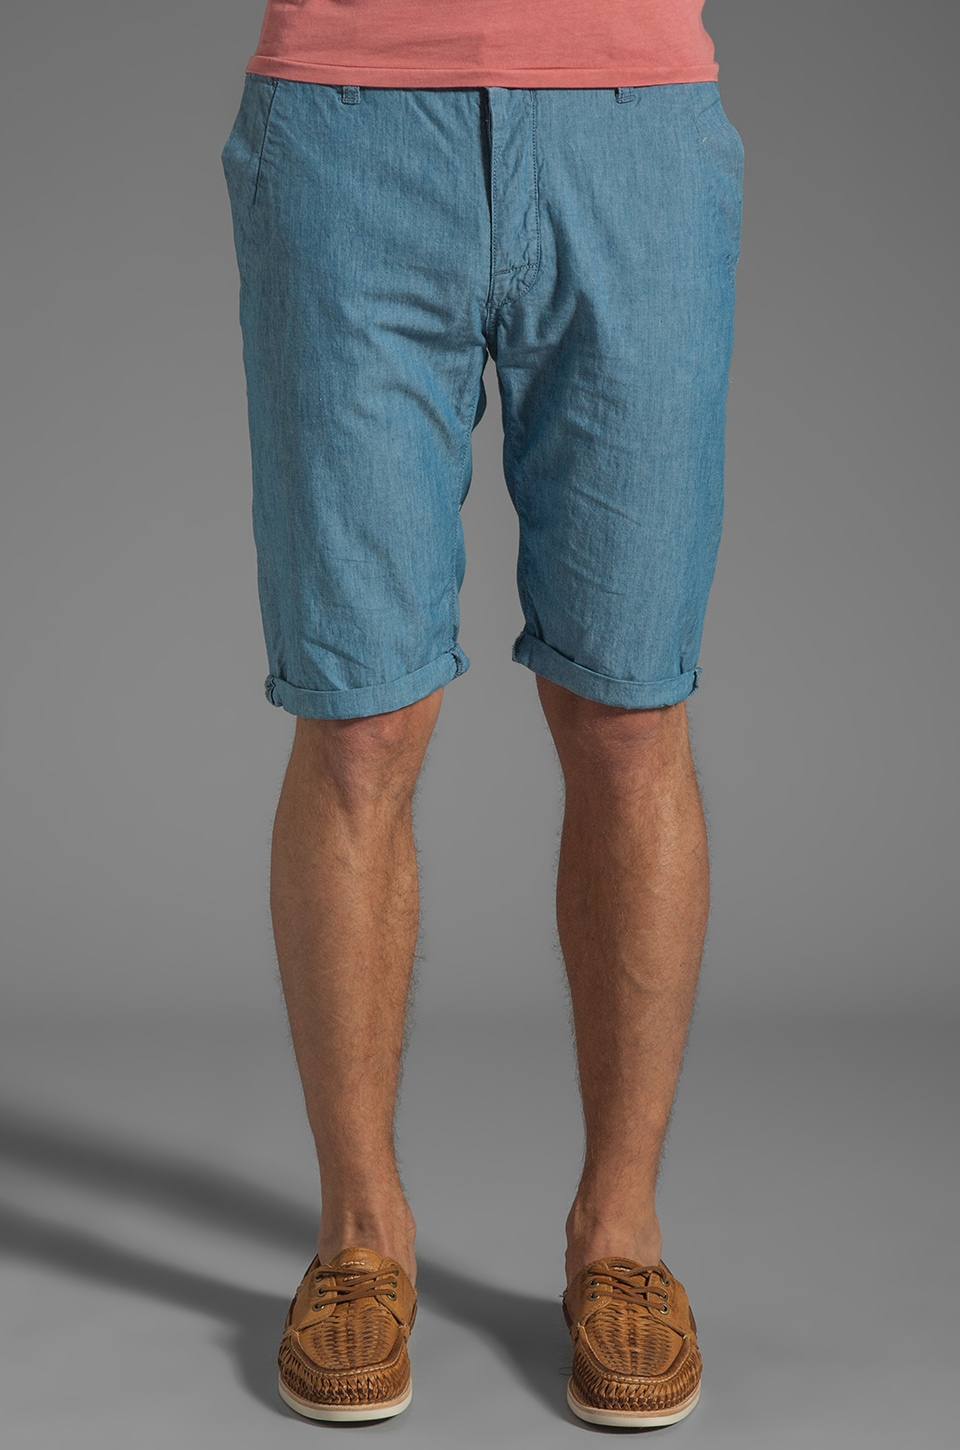 G-Star Bronson Chino Short in Medium Aged